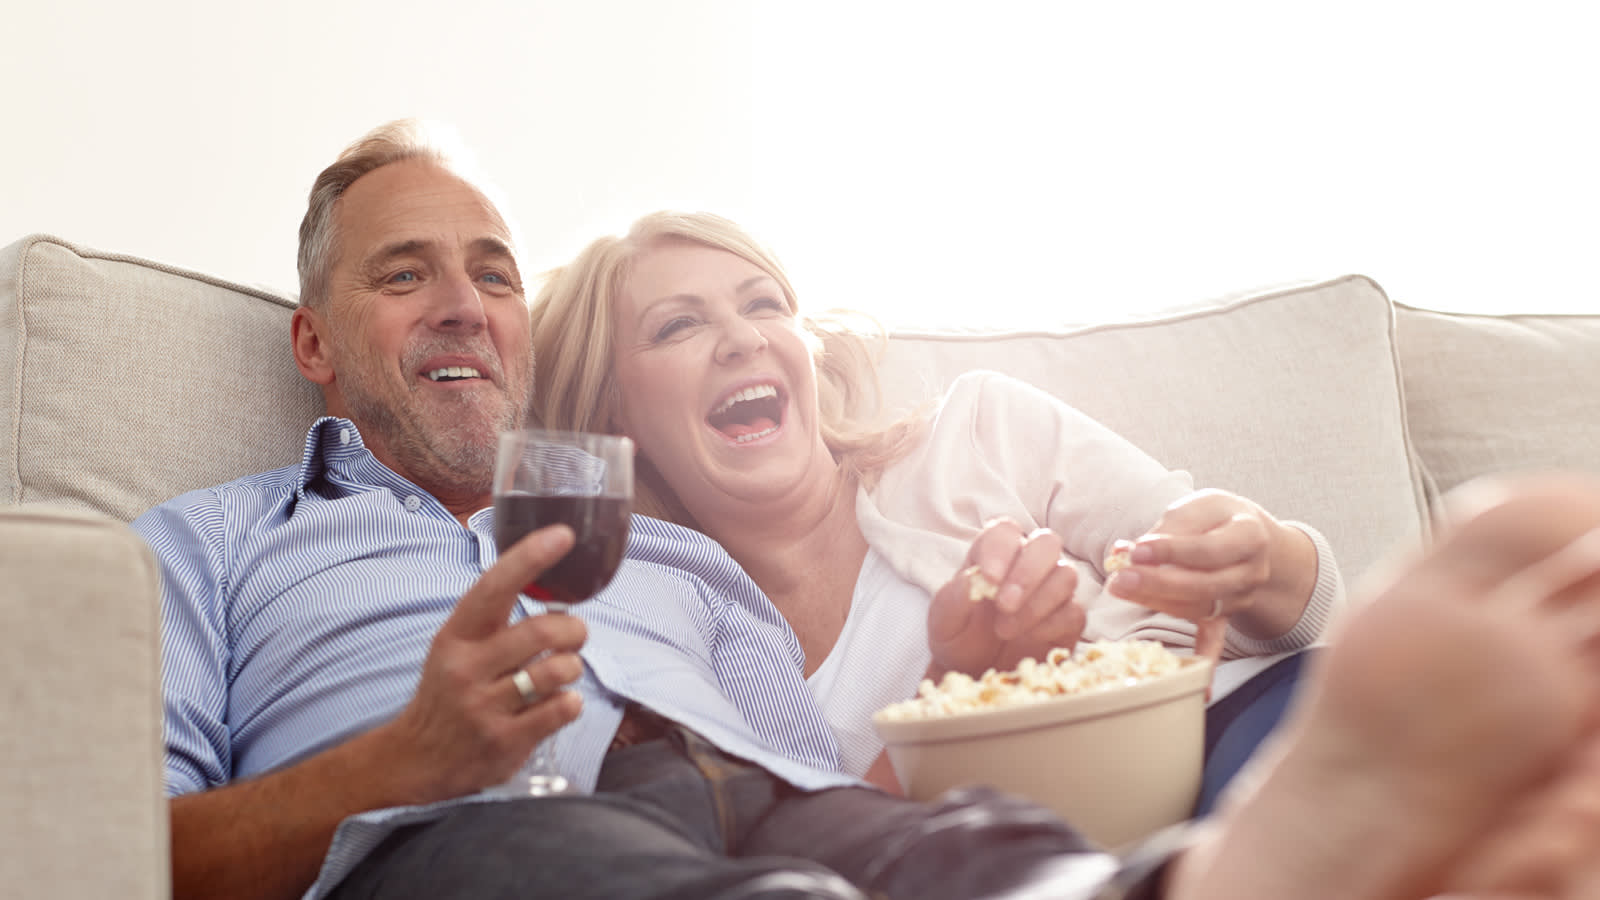 Couple drinking wine and eating popcorn on a white fabric sofa